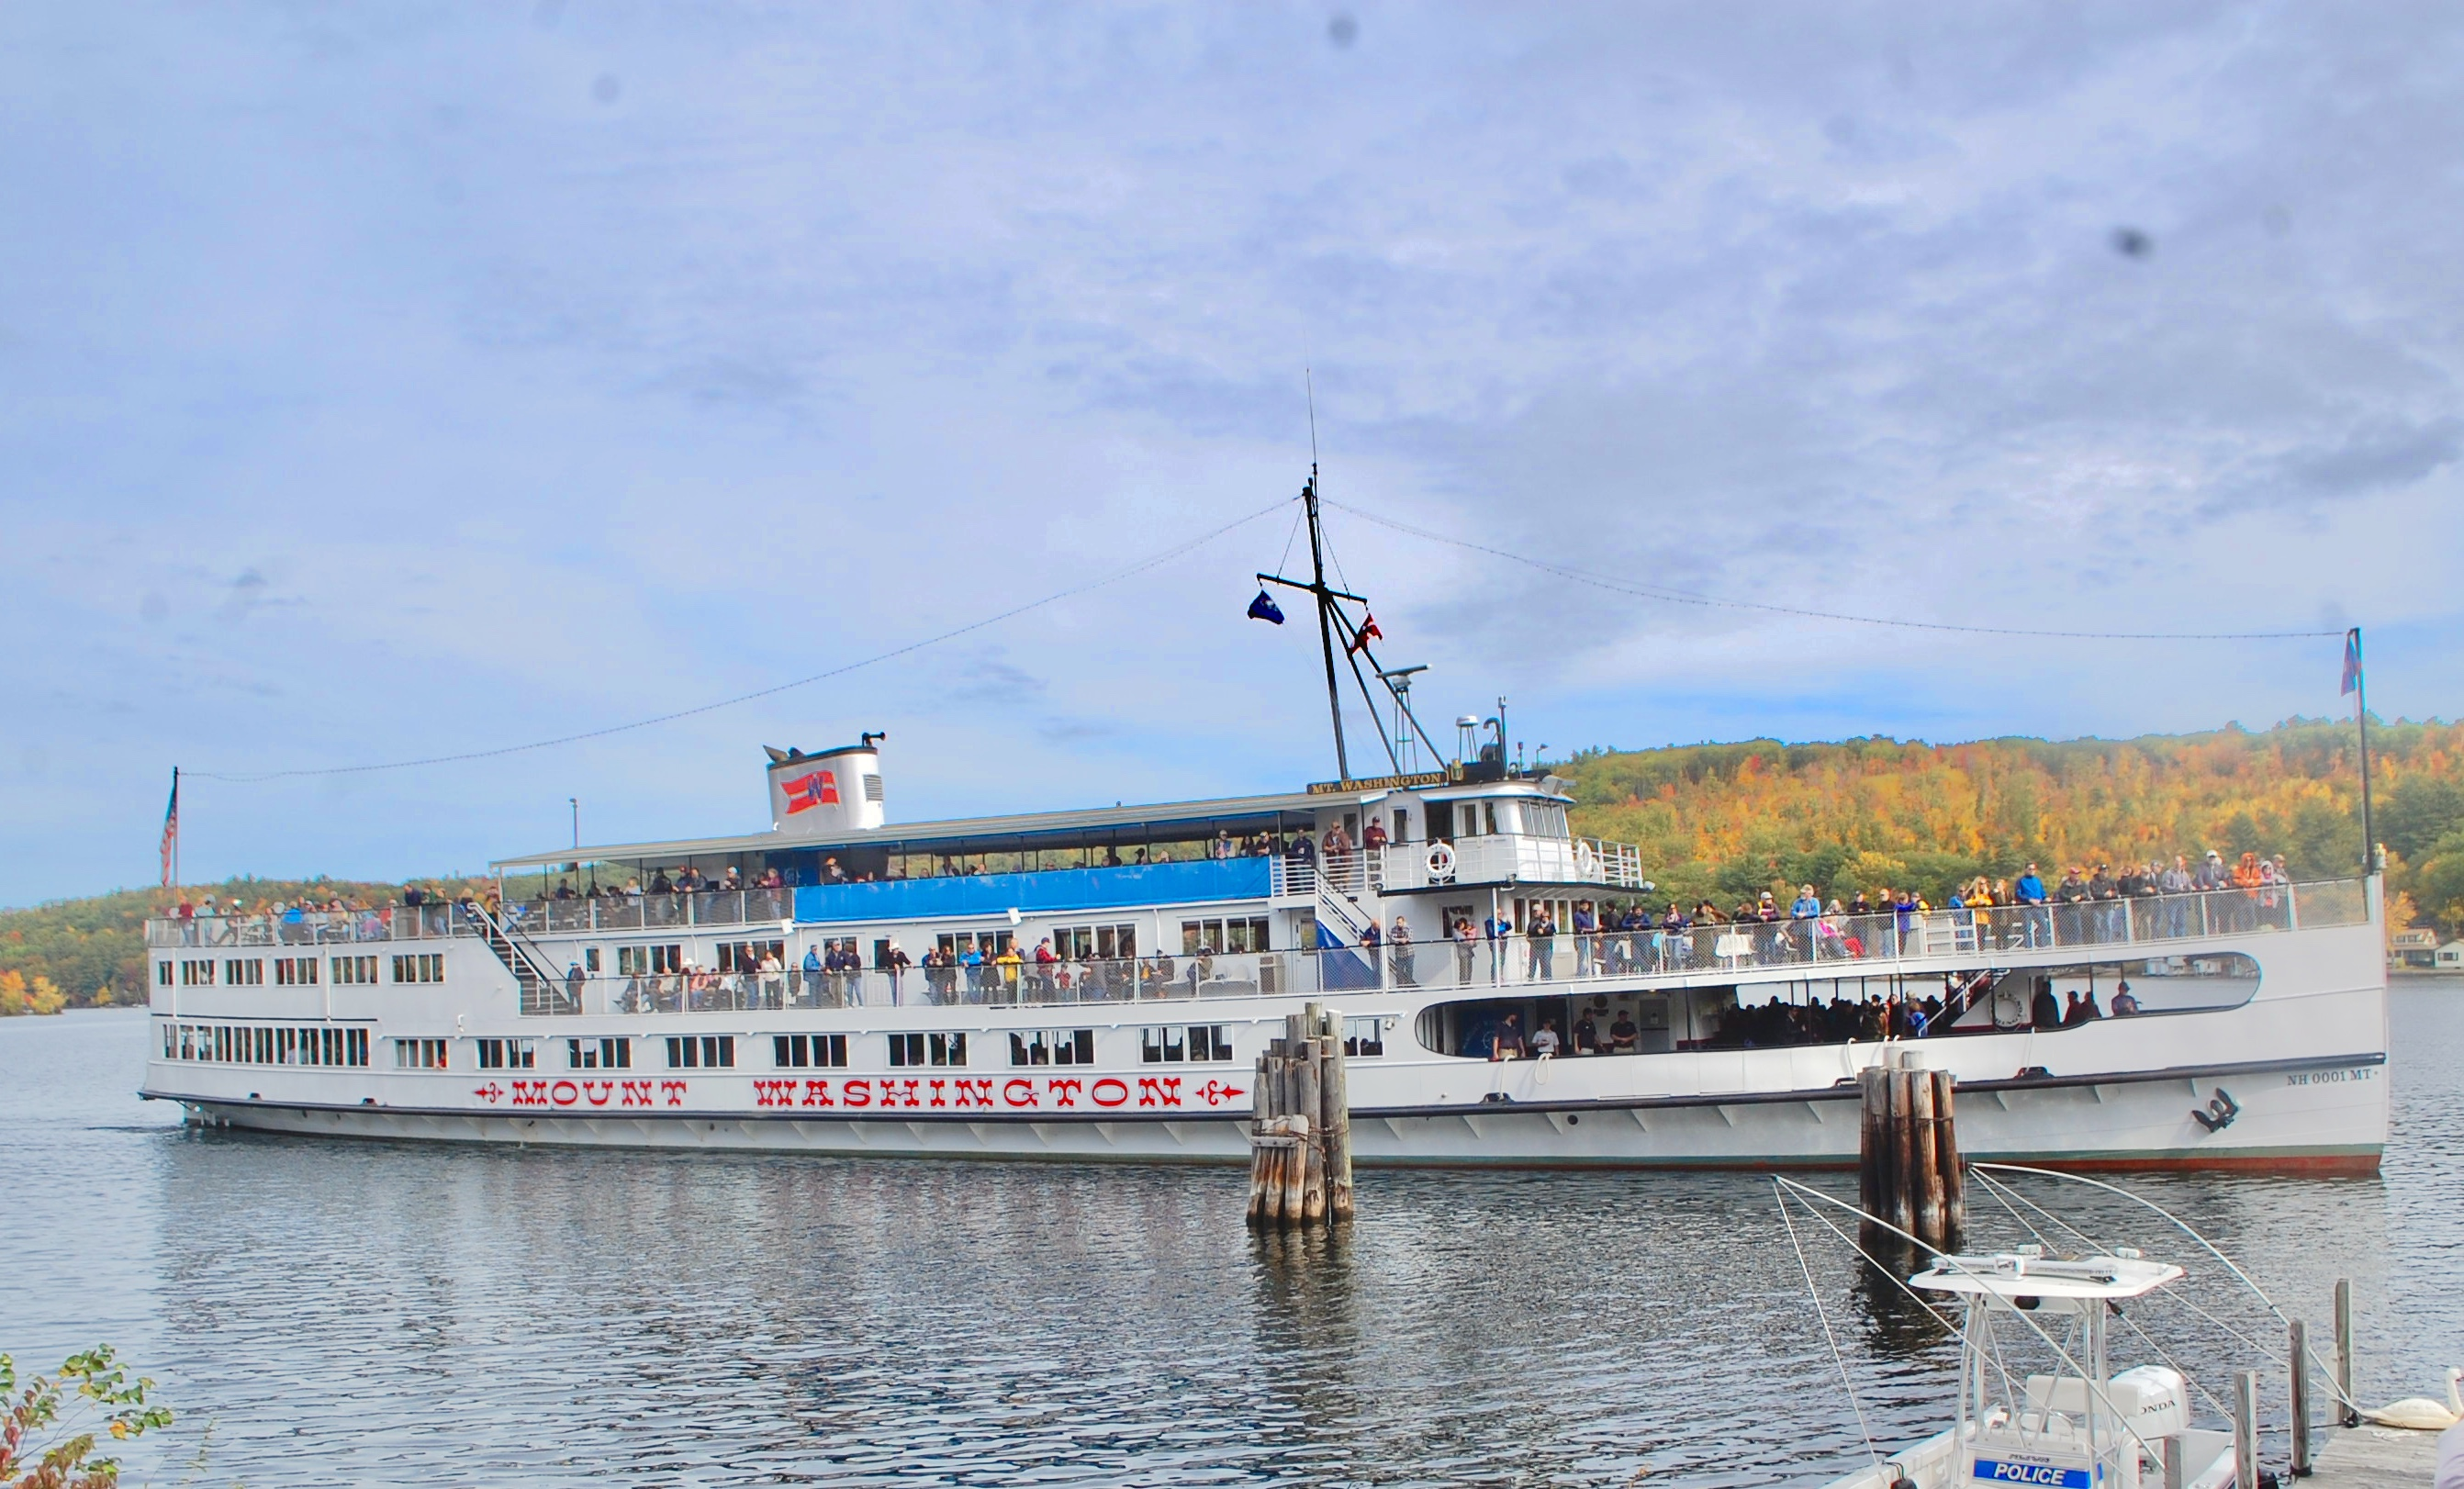 Mount Washington cruise ship with people on board and beautiful foliage in the background